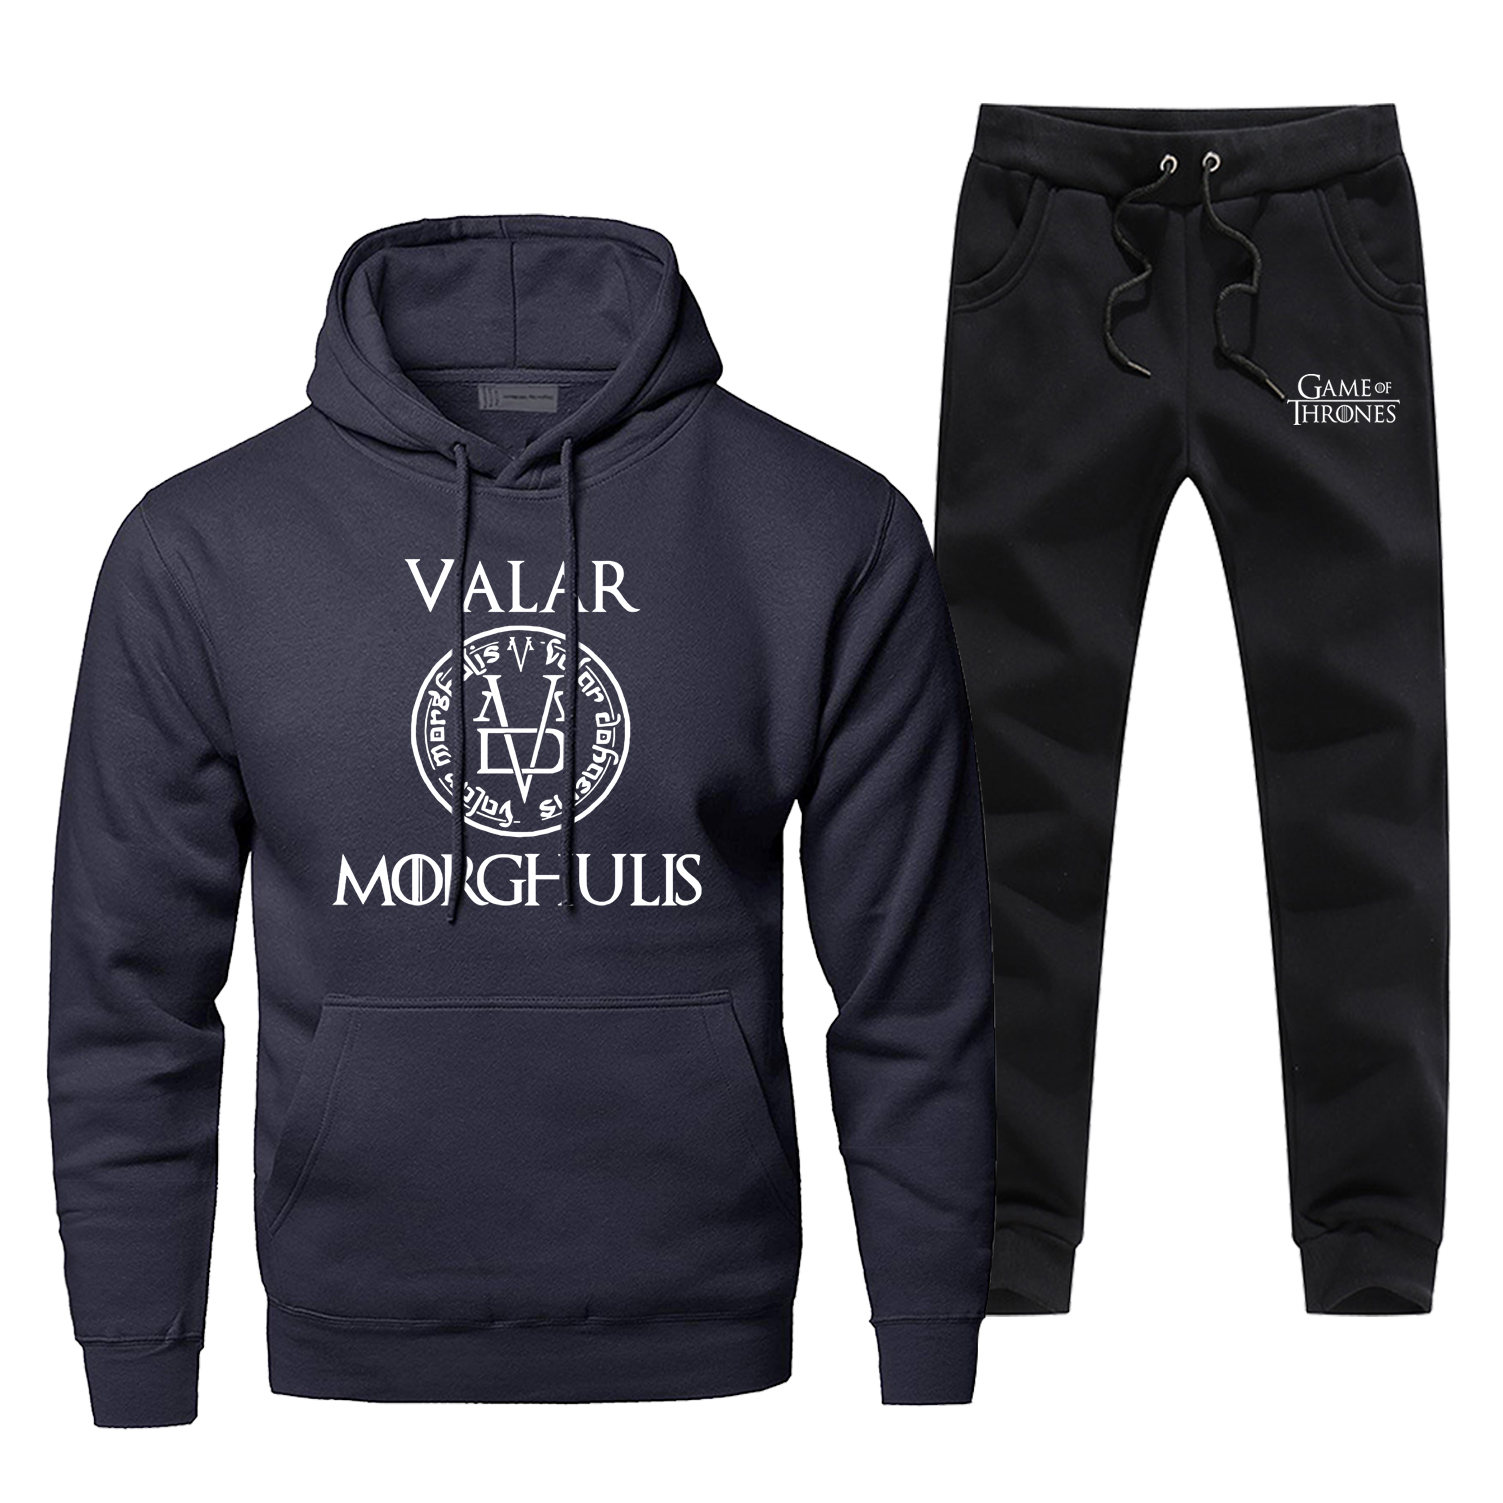 Valar Morghulis Game Of Thrones 2 Piece Set 2019 New Fashion Mens Sets Warm Complete Man Tracksuit Fleece Arya Stark Hoody Pants